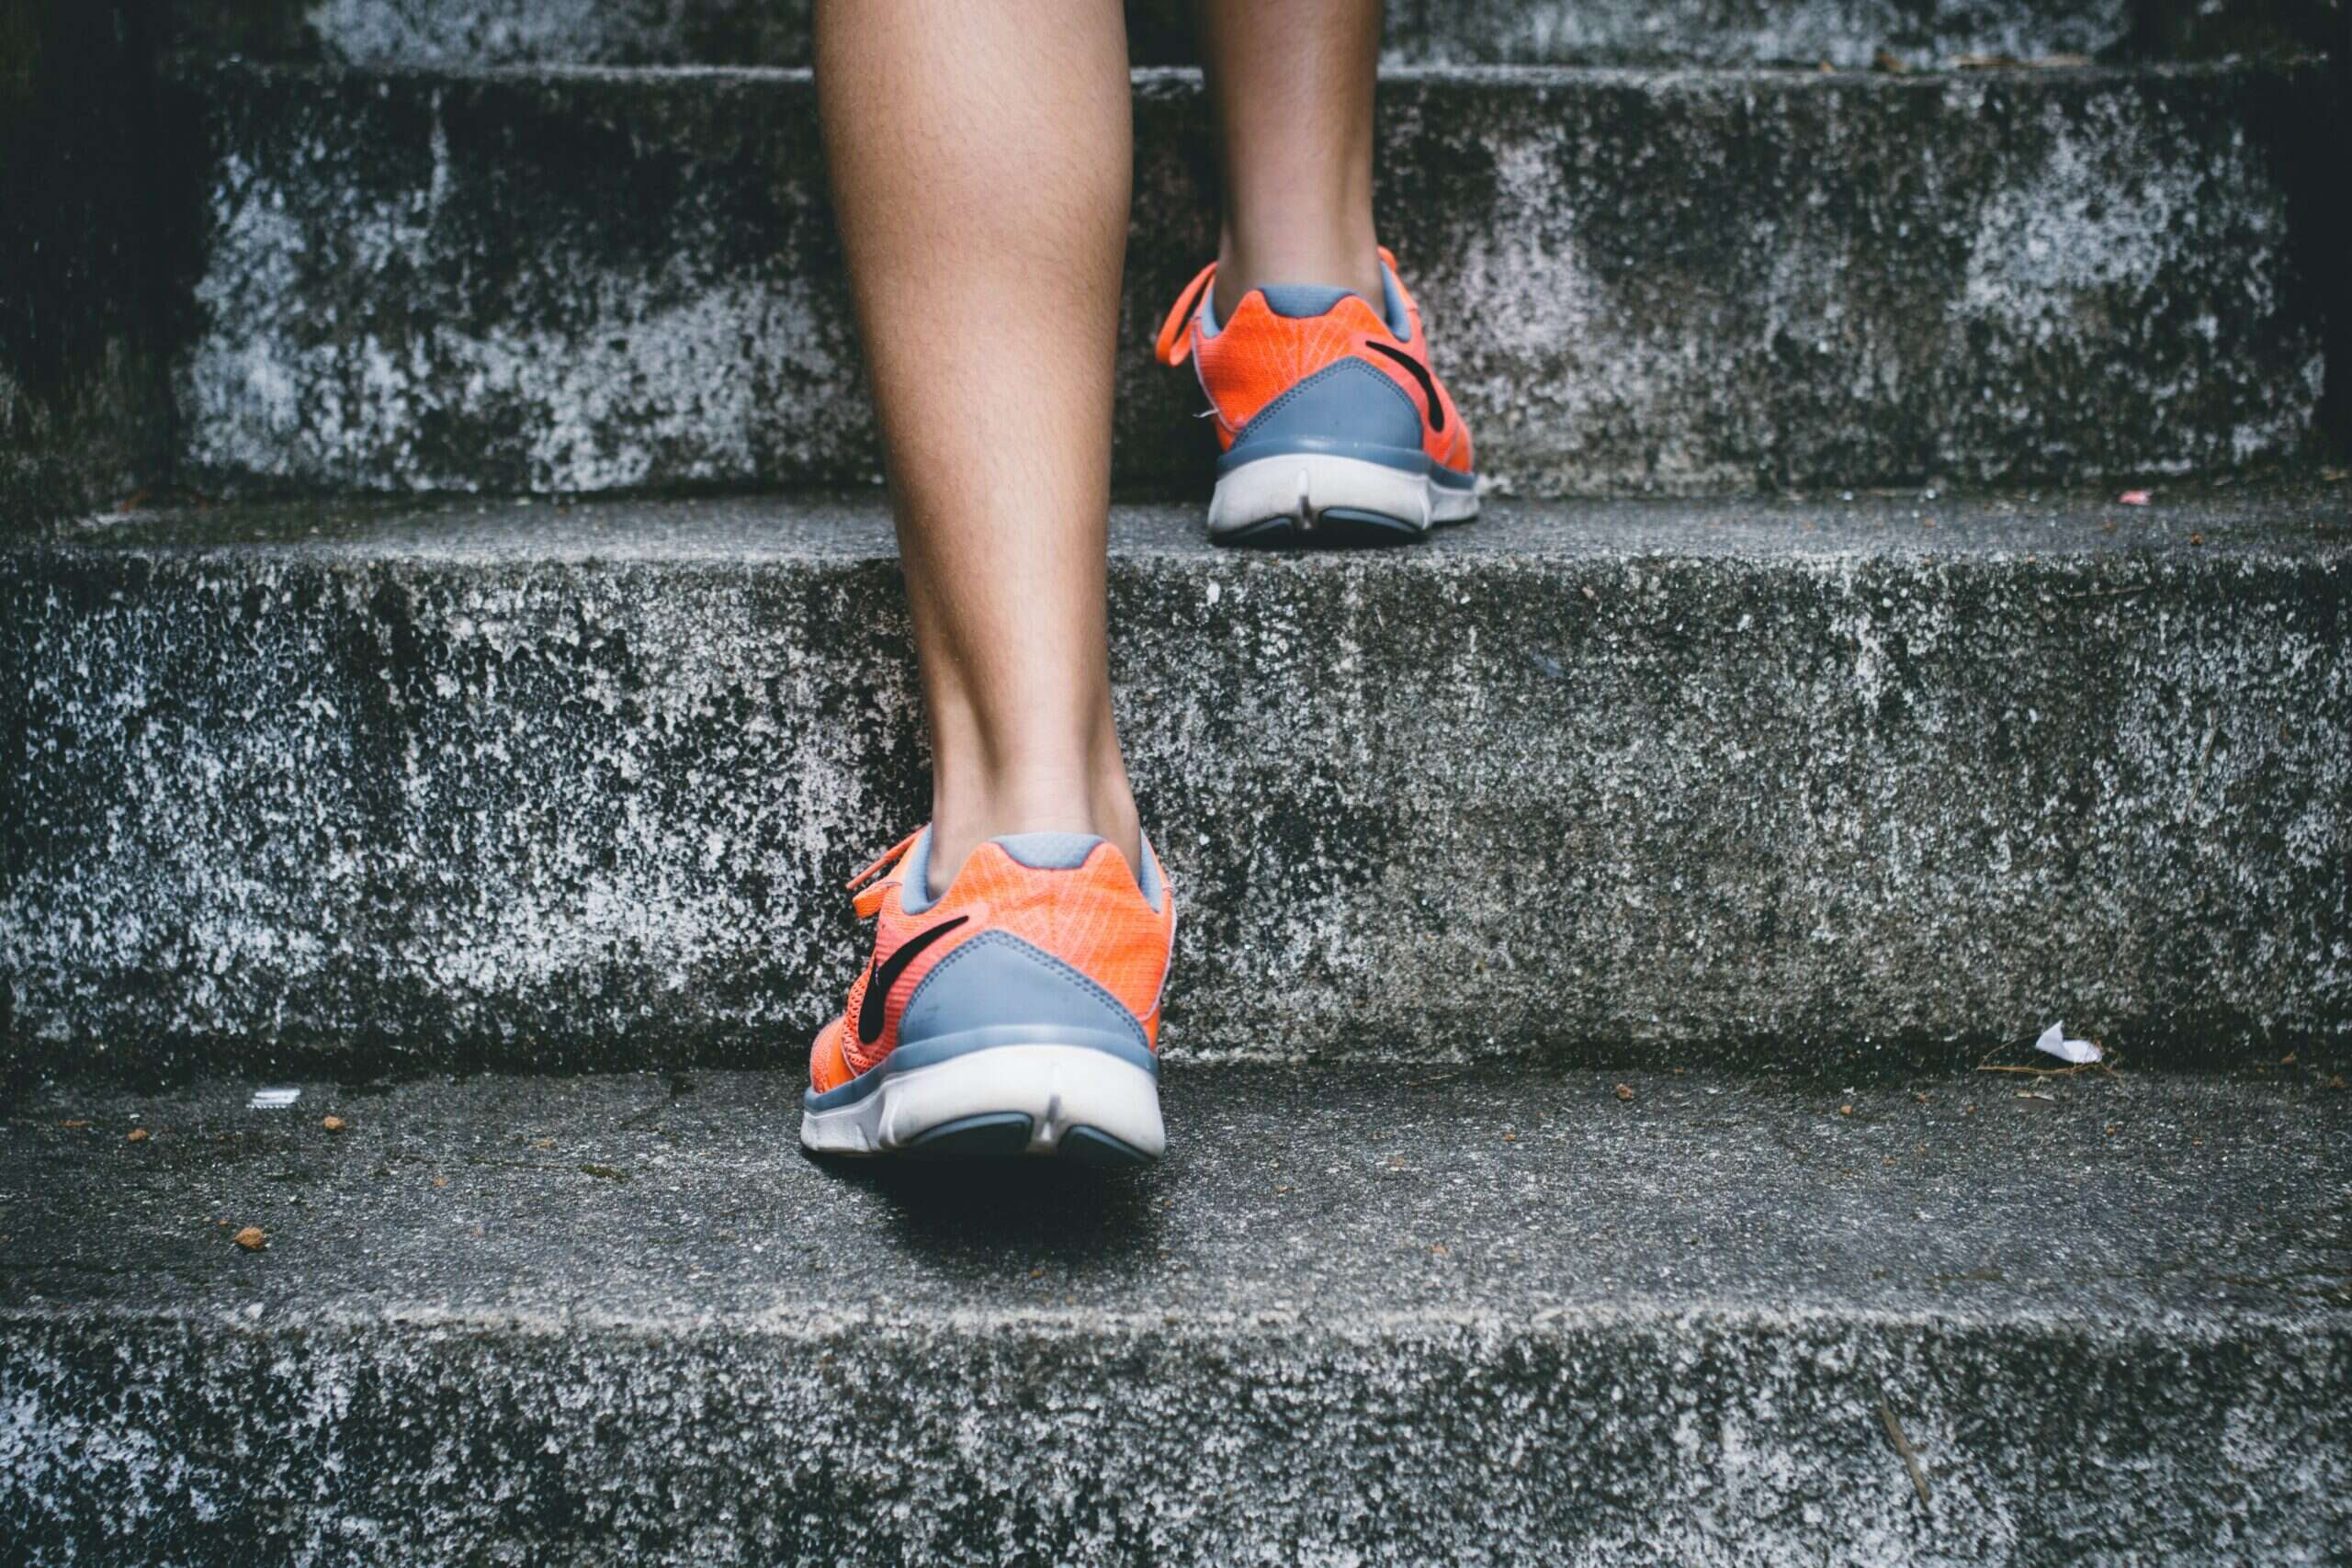 Can you be active with asthma?